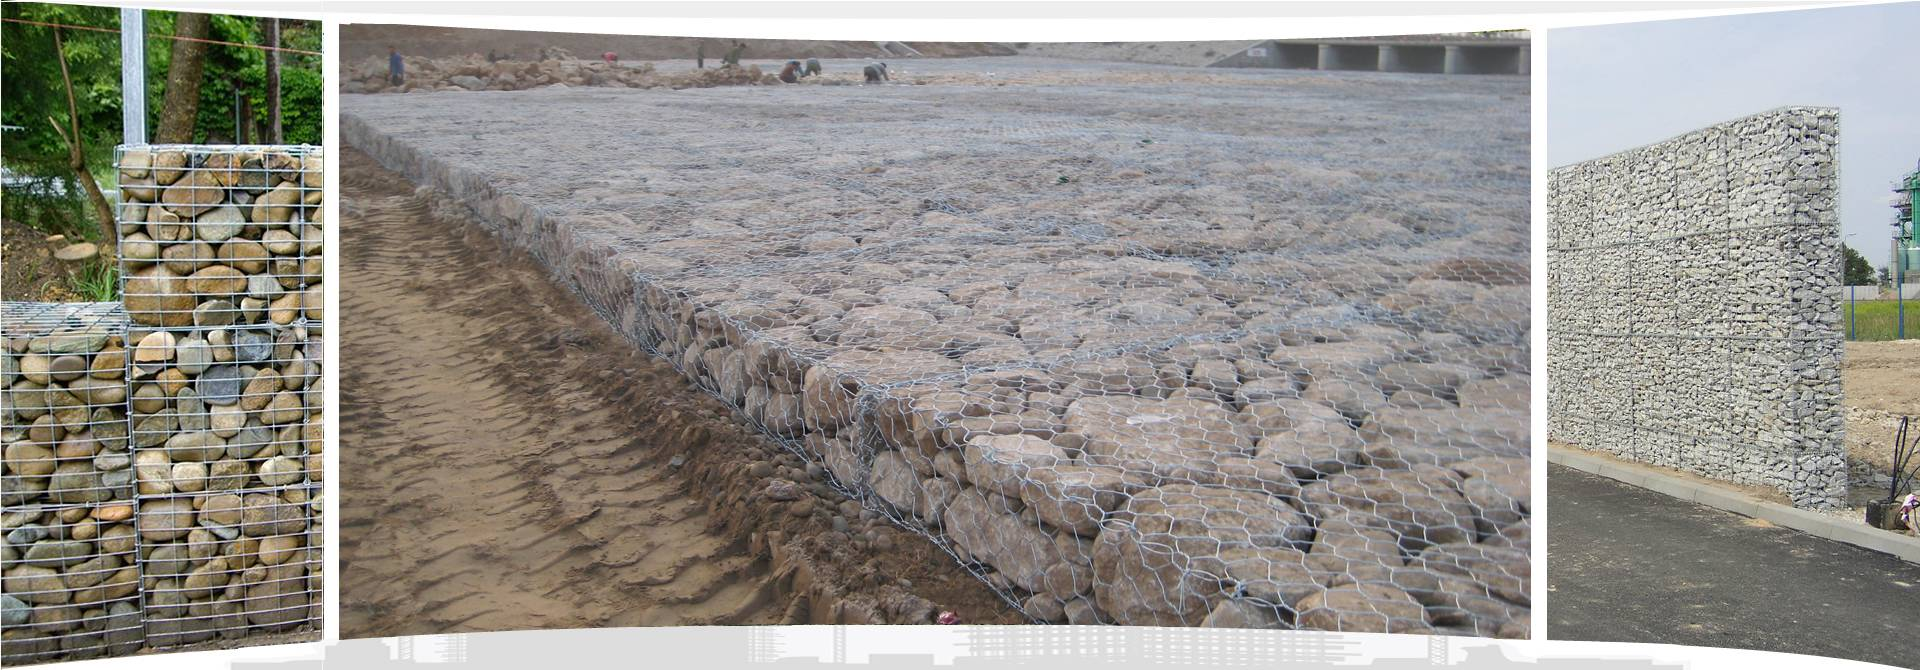 Three galvanized welded gabions on the grassland.